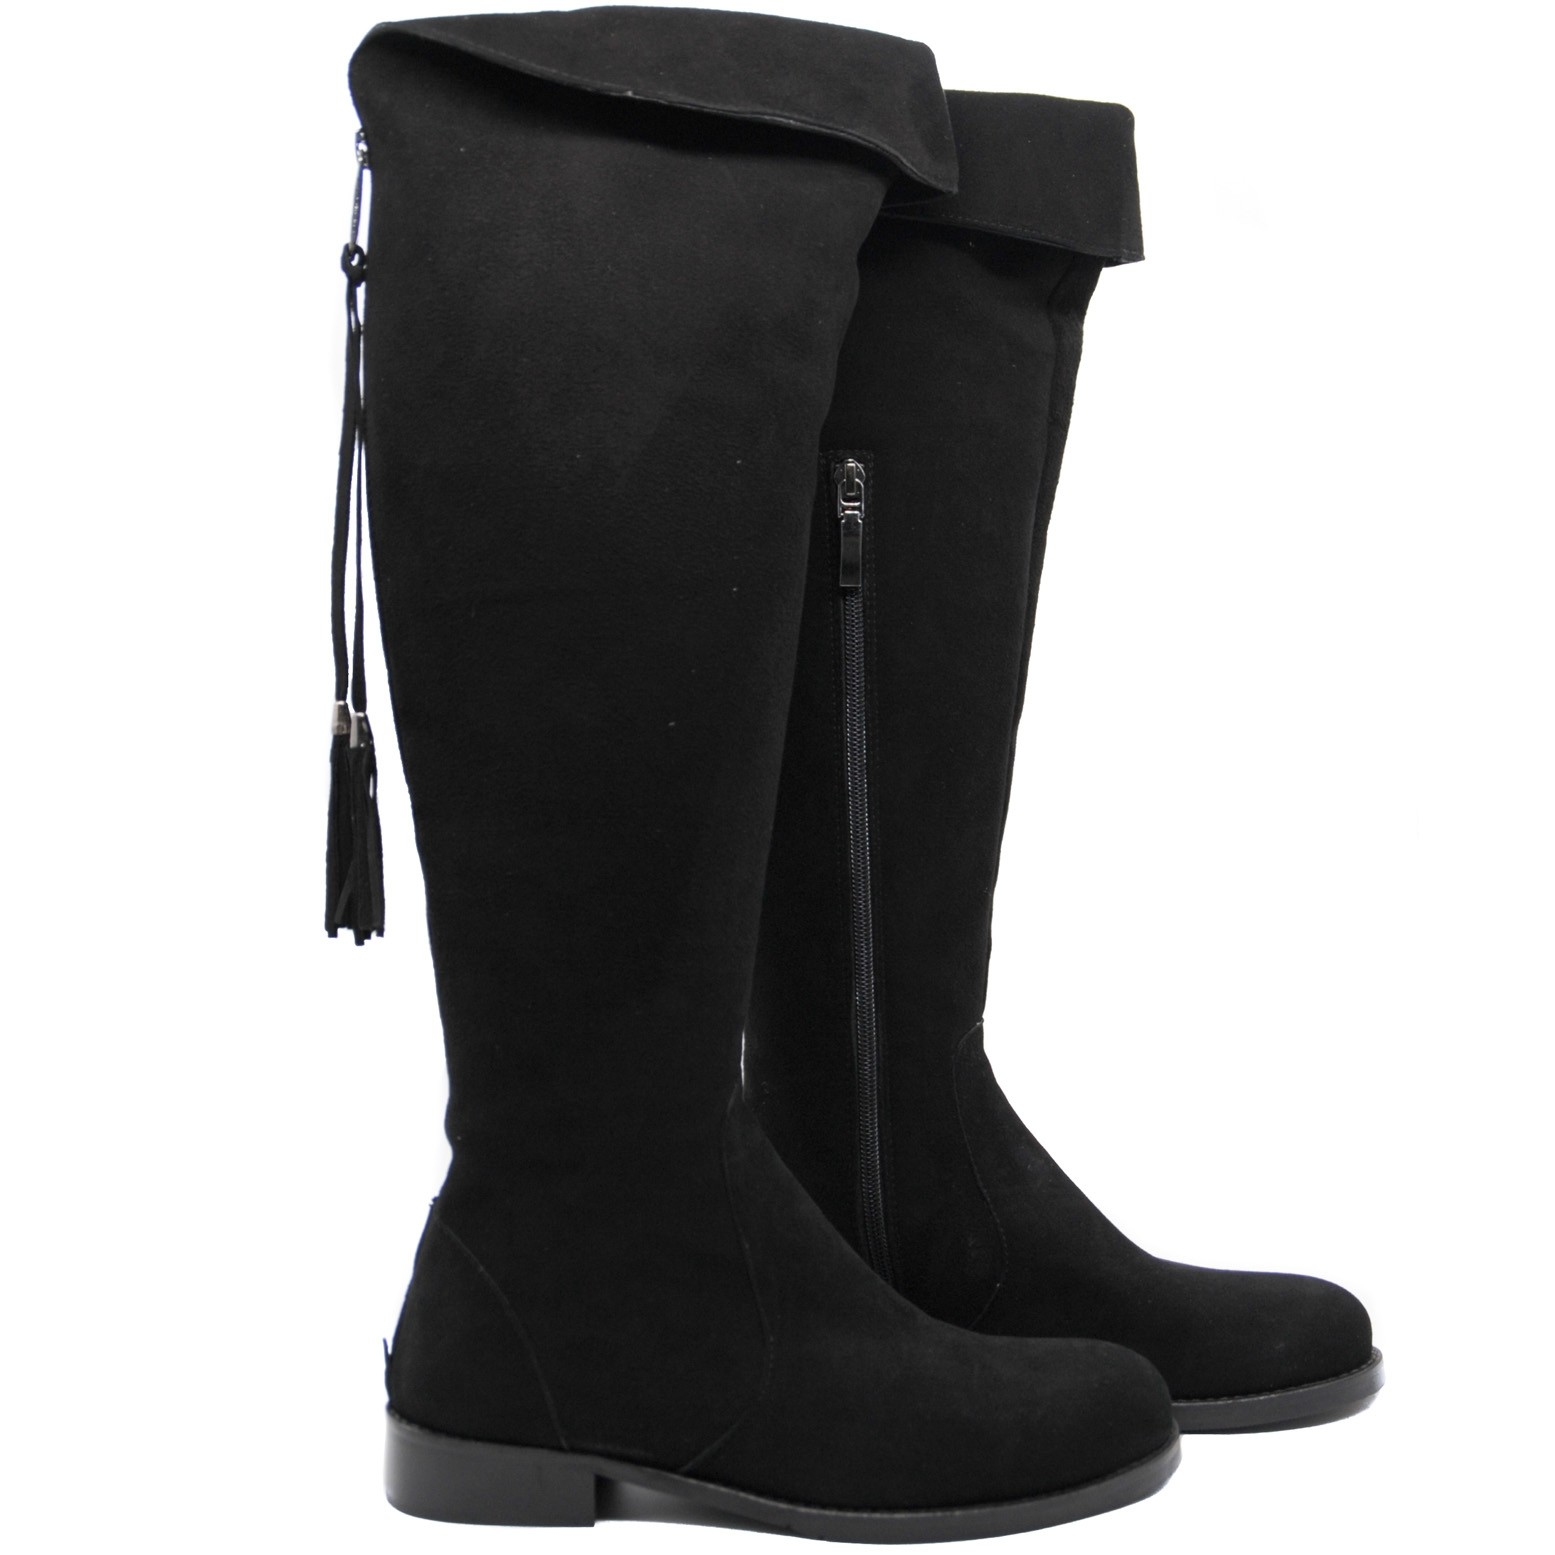 LucyToni Womens Suede Knee High Stylish Burghley Boots for All Seasons - Black